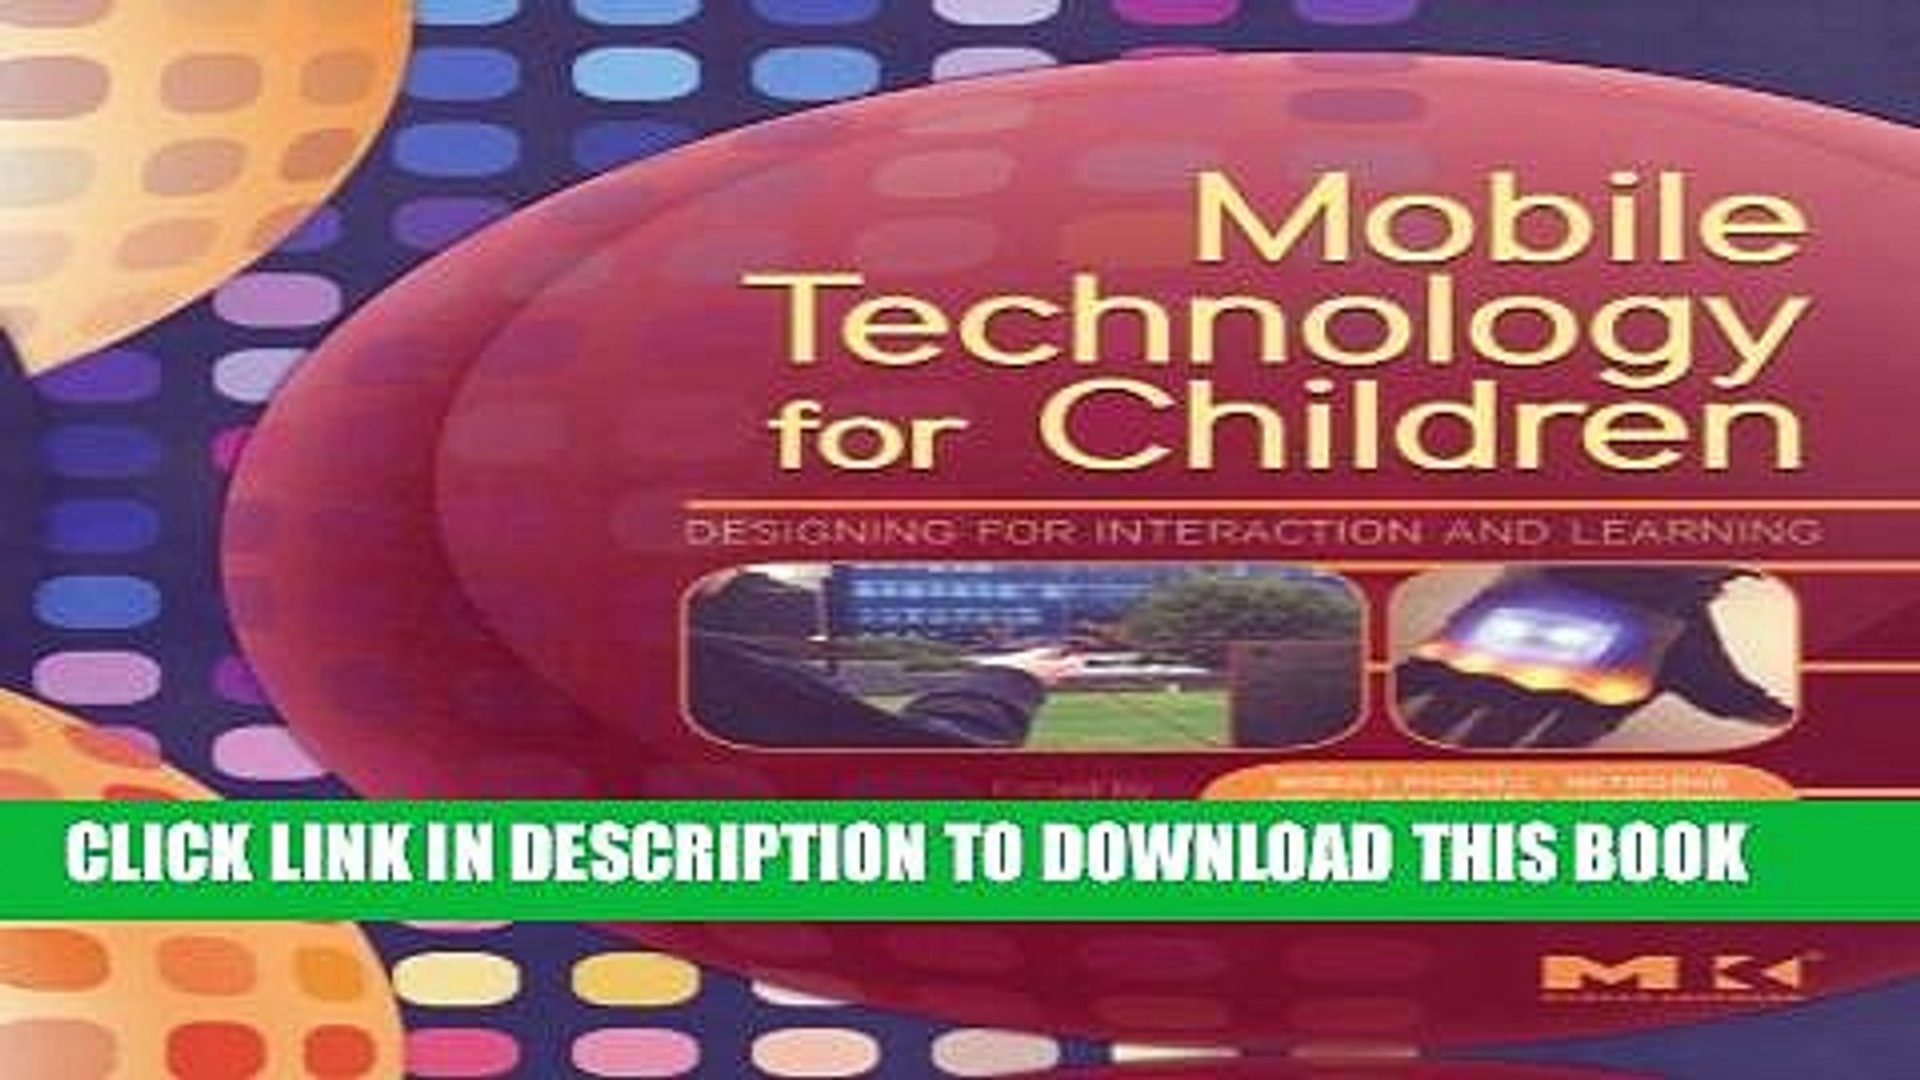 [PDF] Mobile Technology for Children: Designing for Interaction and Learning (Morgan Kaufmann